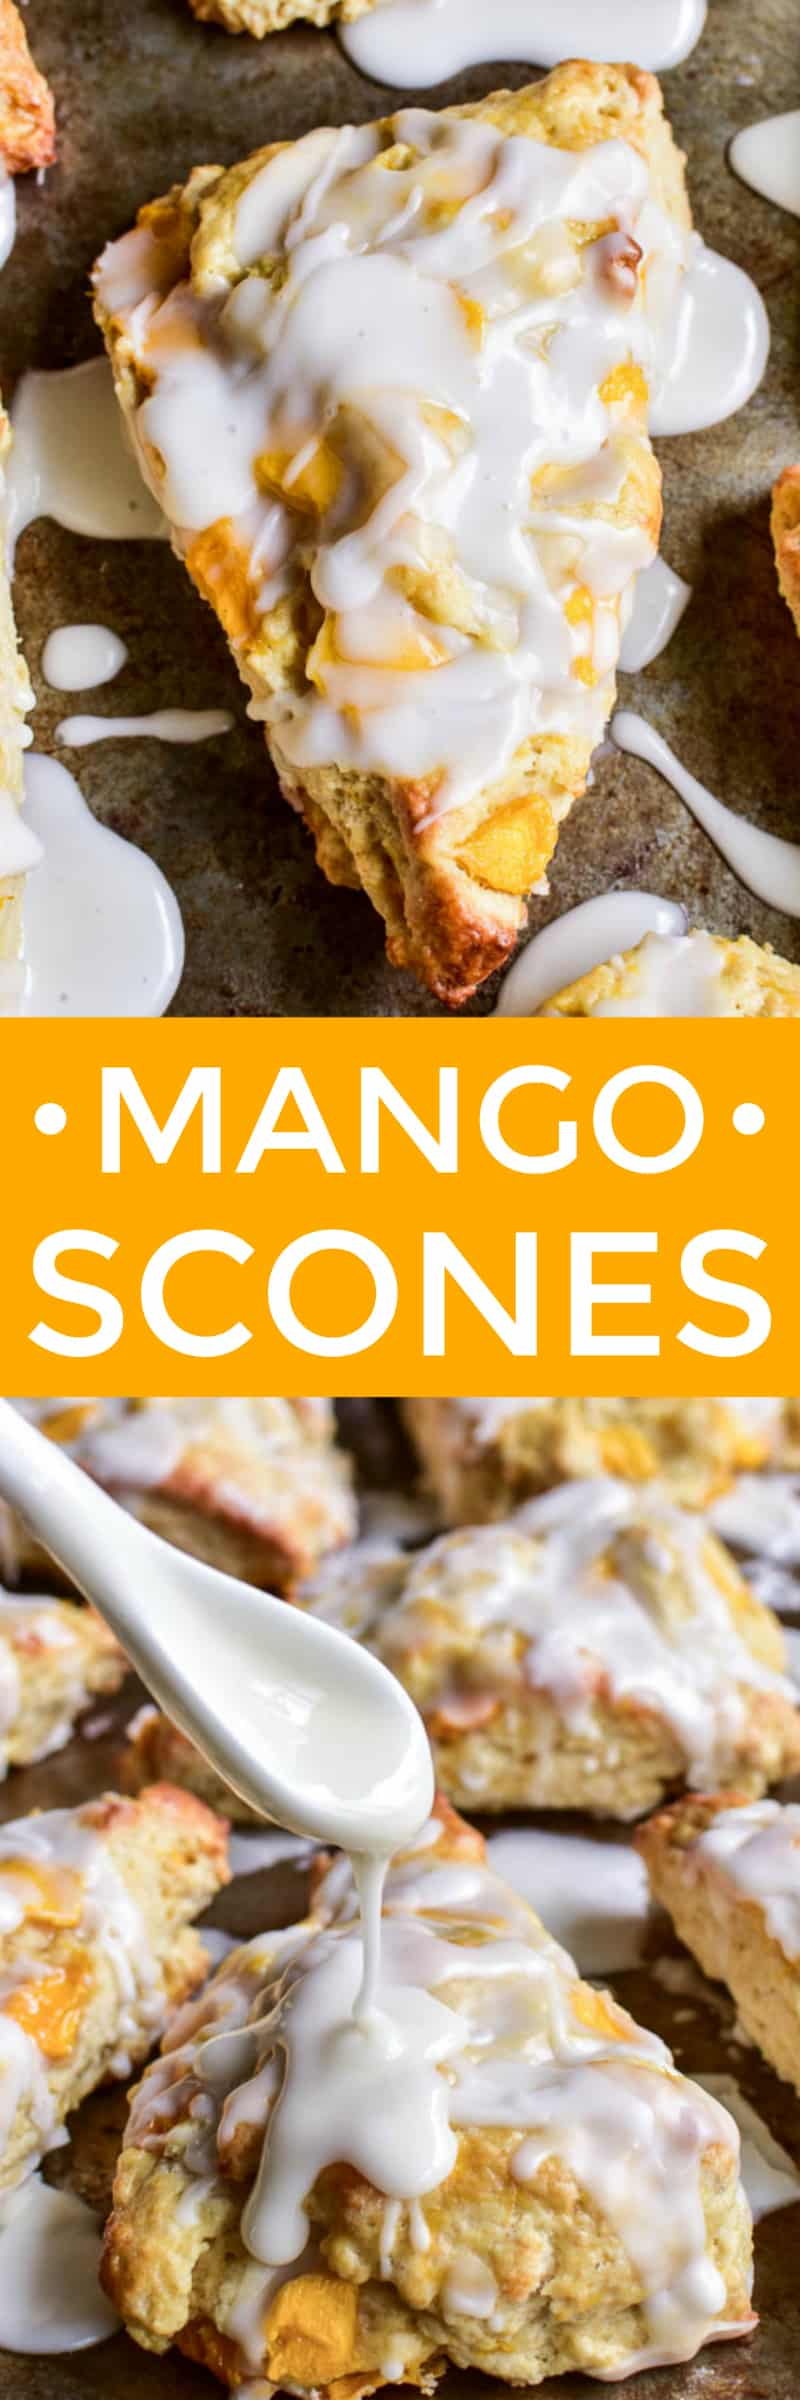 These Bakery Style Mango Scones are one of our favorite breakfast treats!  They're golden brown and crispy on the outside, moist and delicious on the inside, and drizzled with a sweet vanilla glaze. The perfect scones...with a fun flavor twist!  This easy recipe makes a delicious addition to any breakfast, brunch, or afternoon tea, and can also double as dessert. If you love all things mango, these Mango Scones are sure to become one of your new favorites!